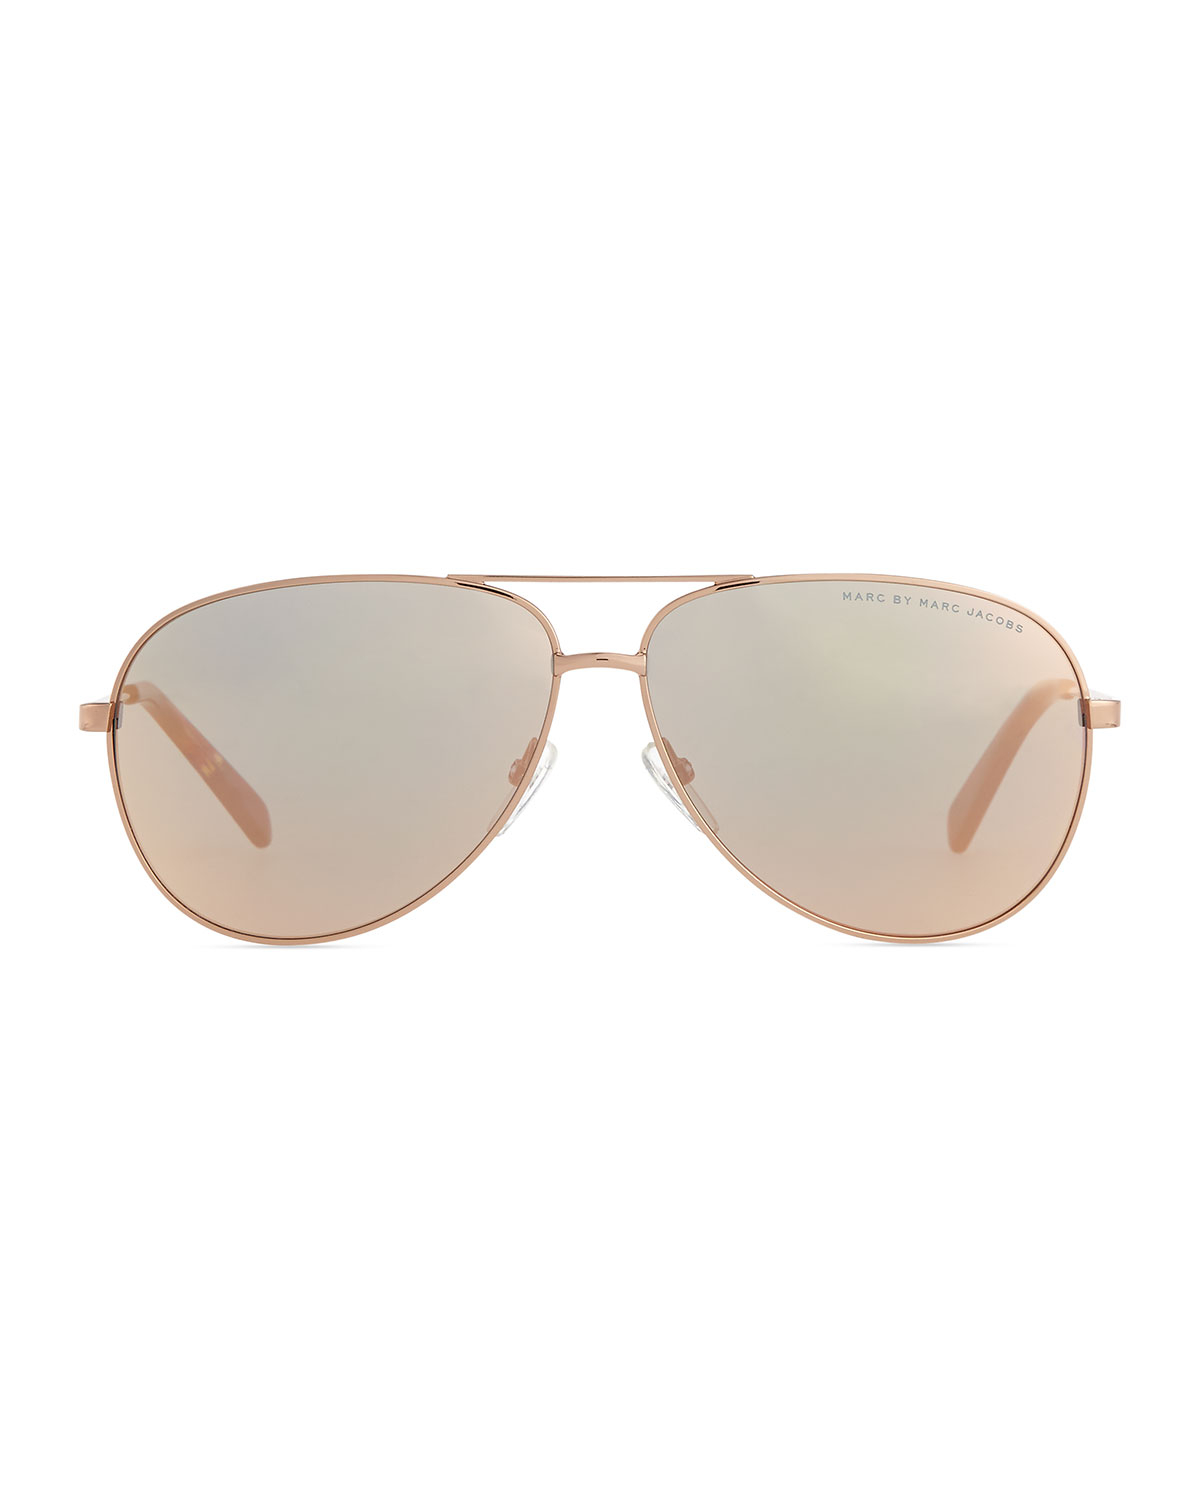 c998c21ed7efc Lyst - Marc By Marc Jacobs Rose Golden Aviator Sunglasses With ...